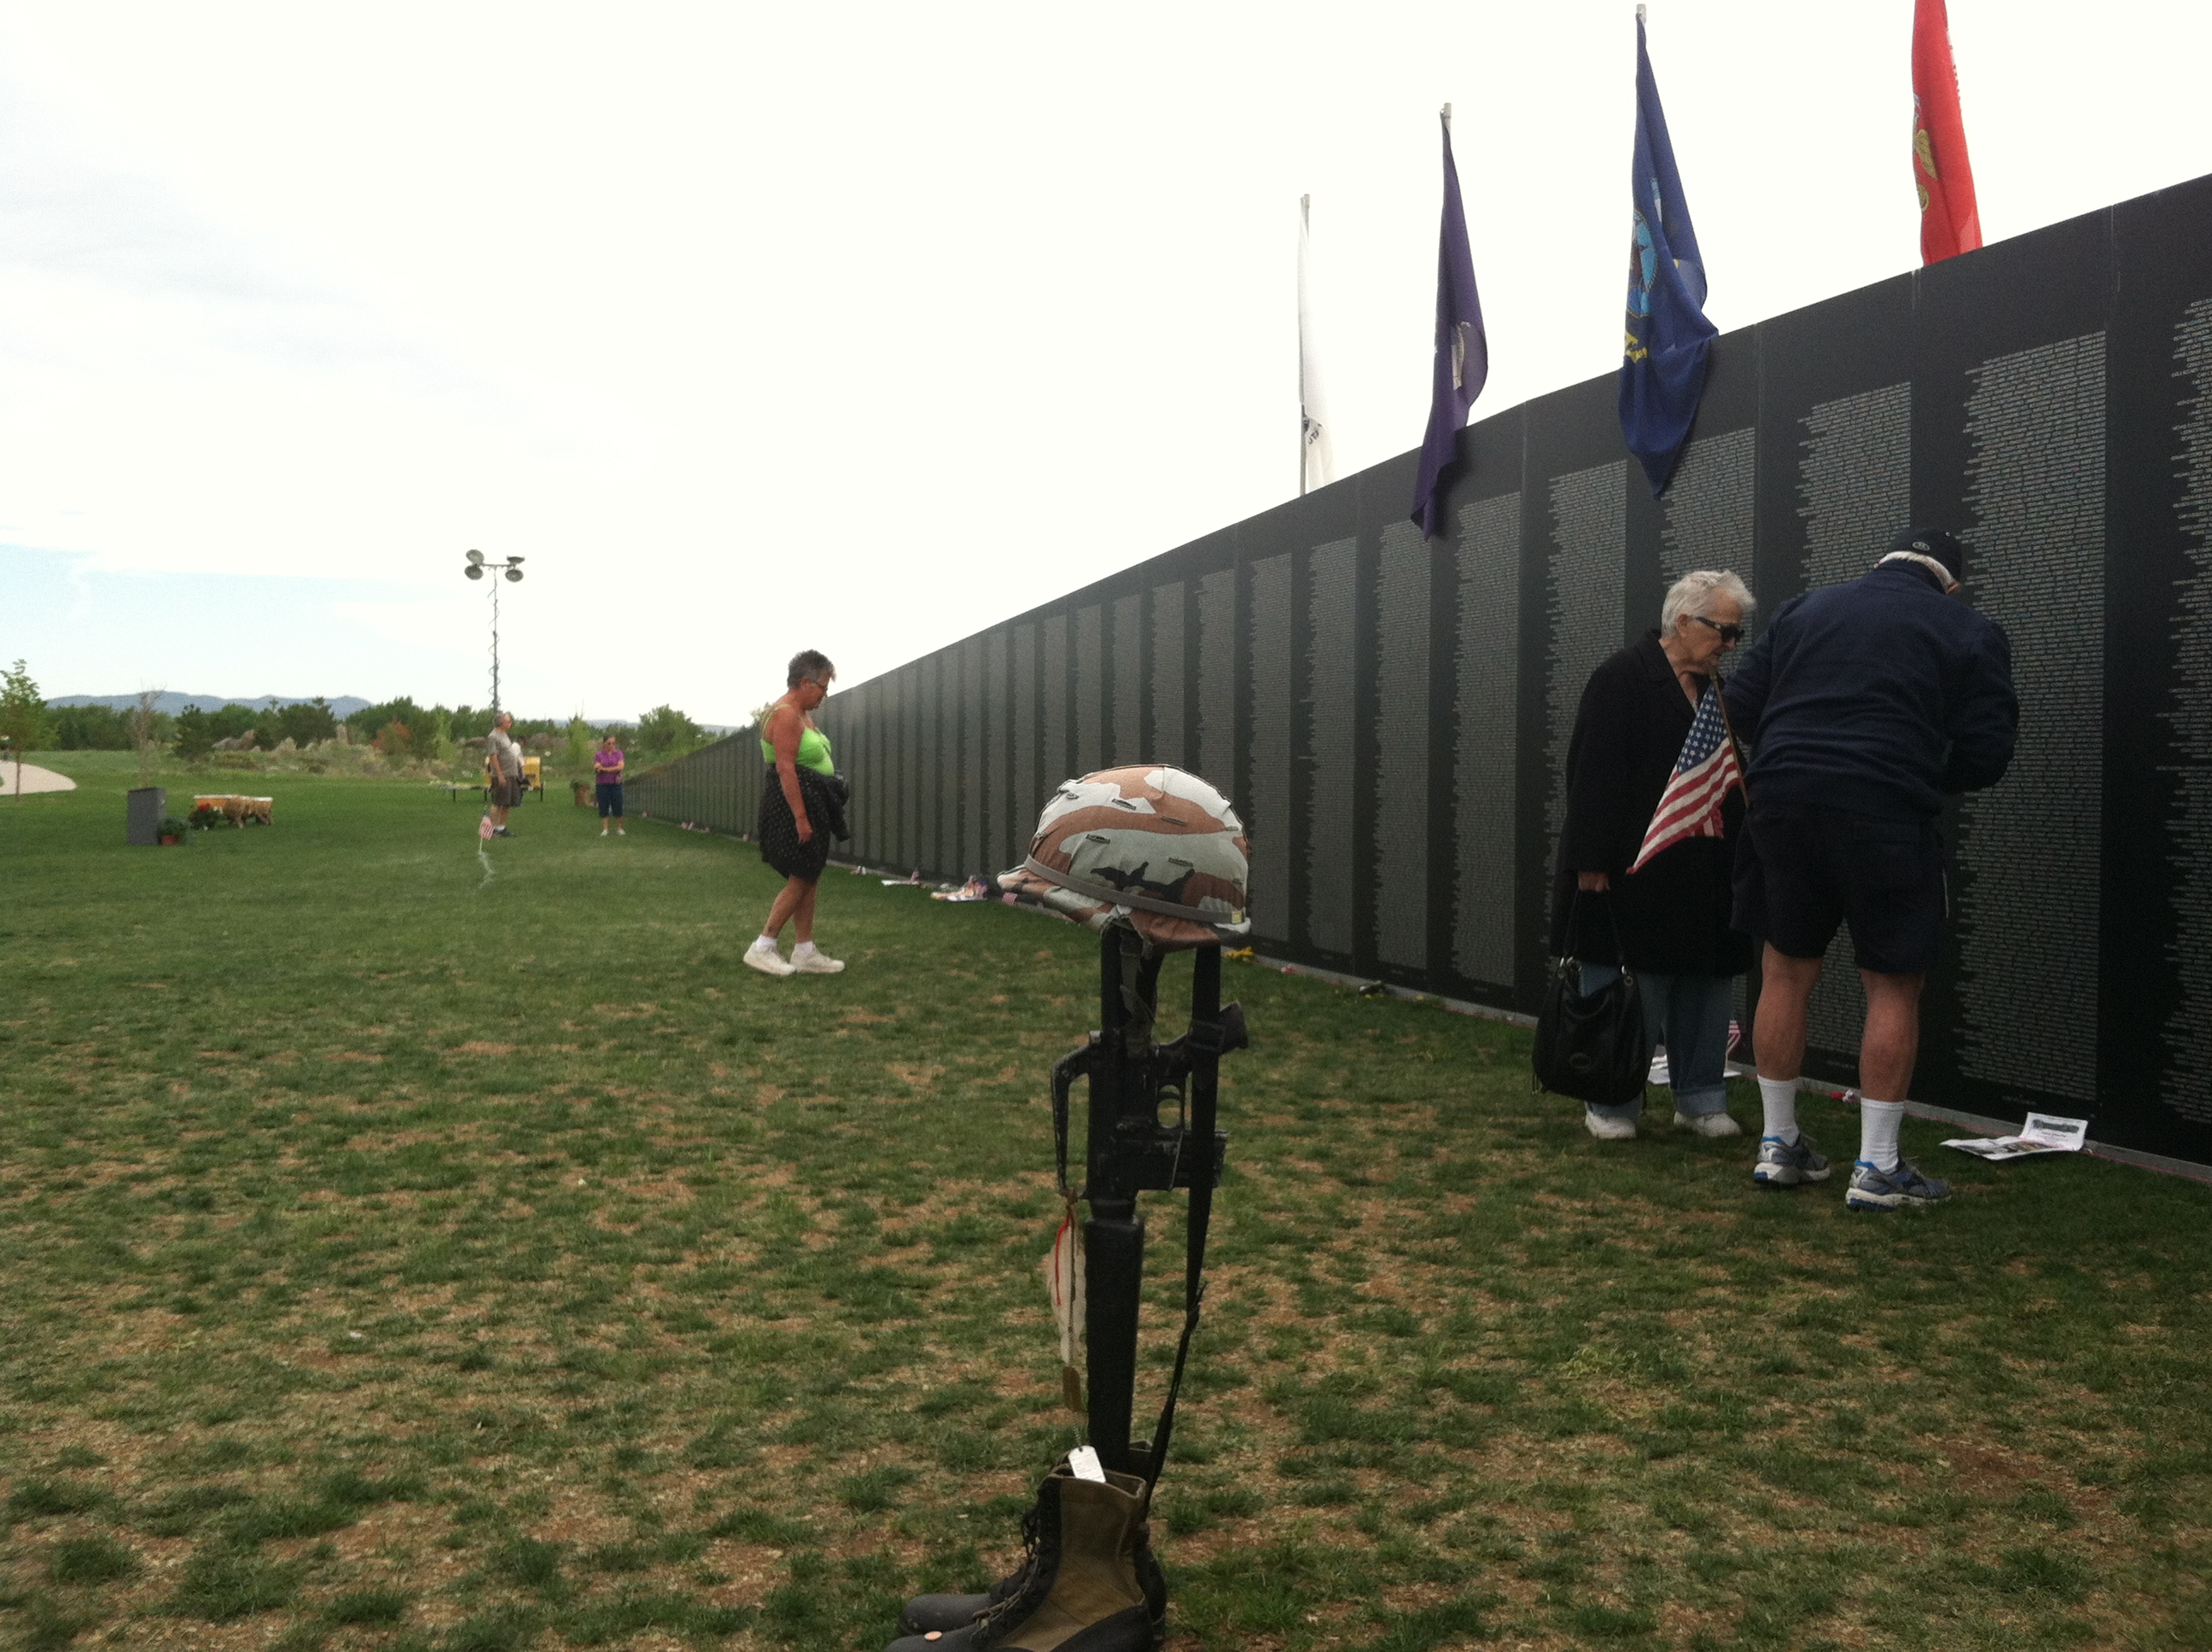 Vietnam traveling wall in Fort Collins